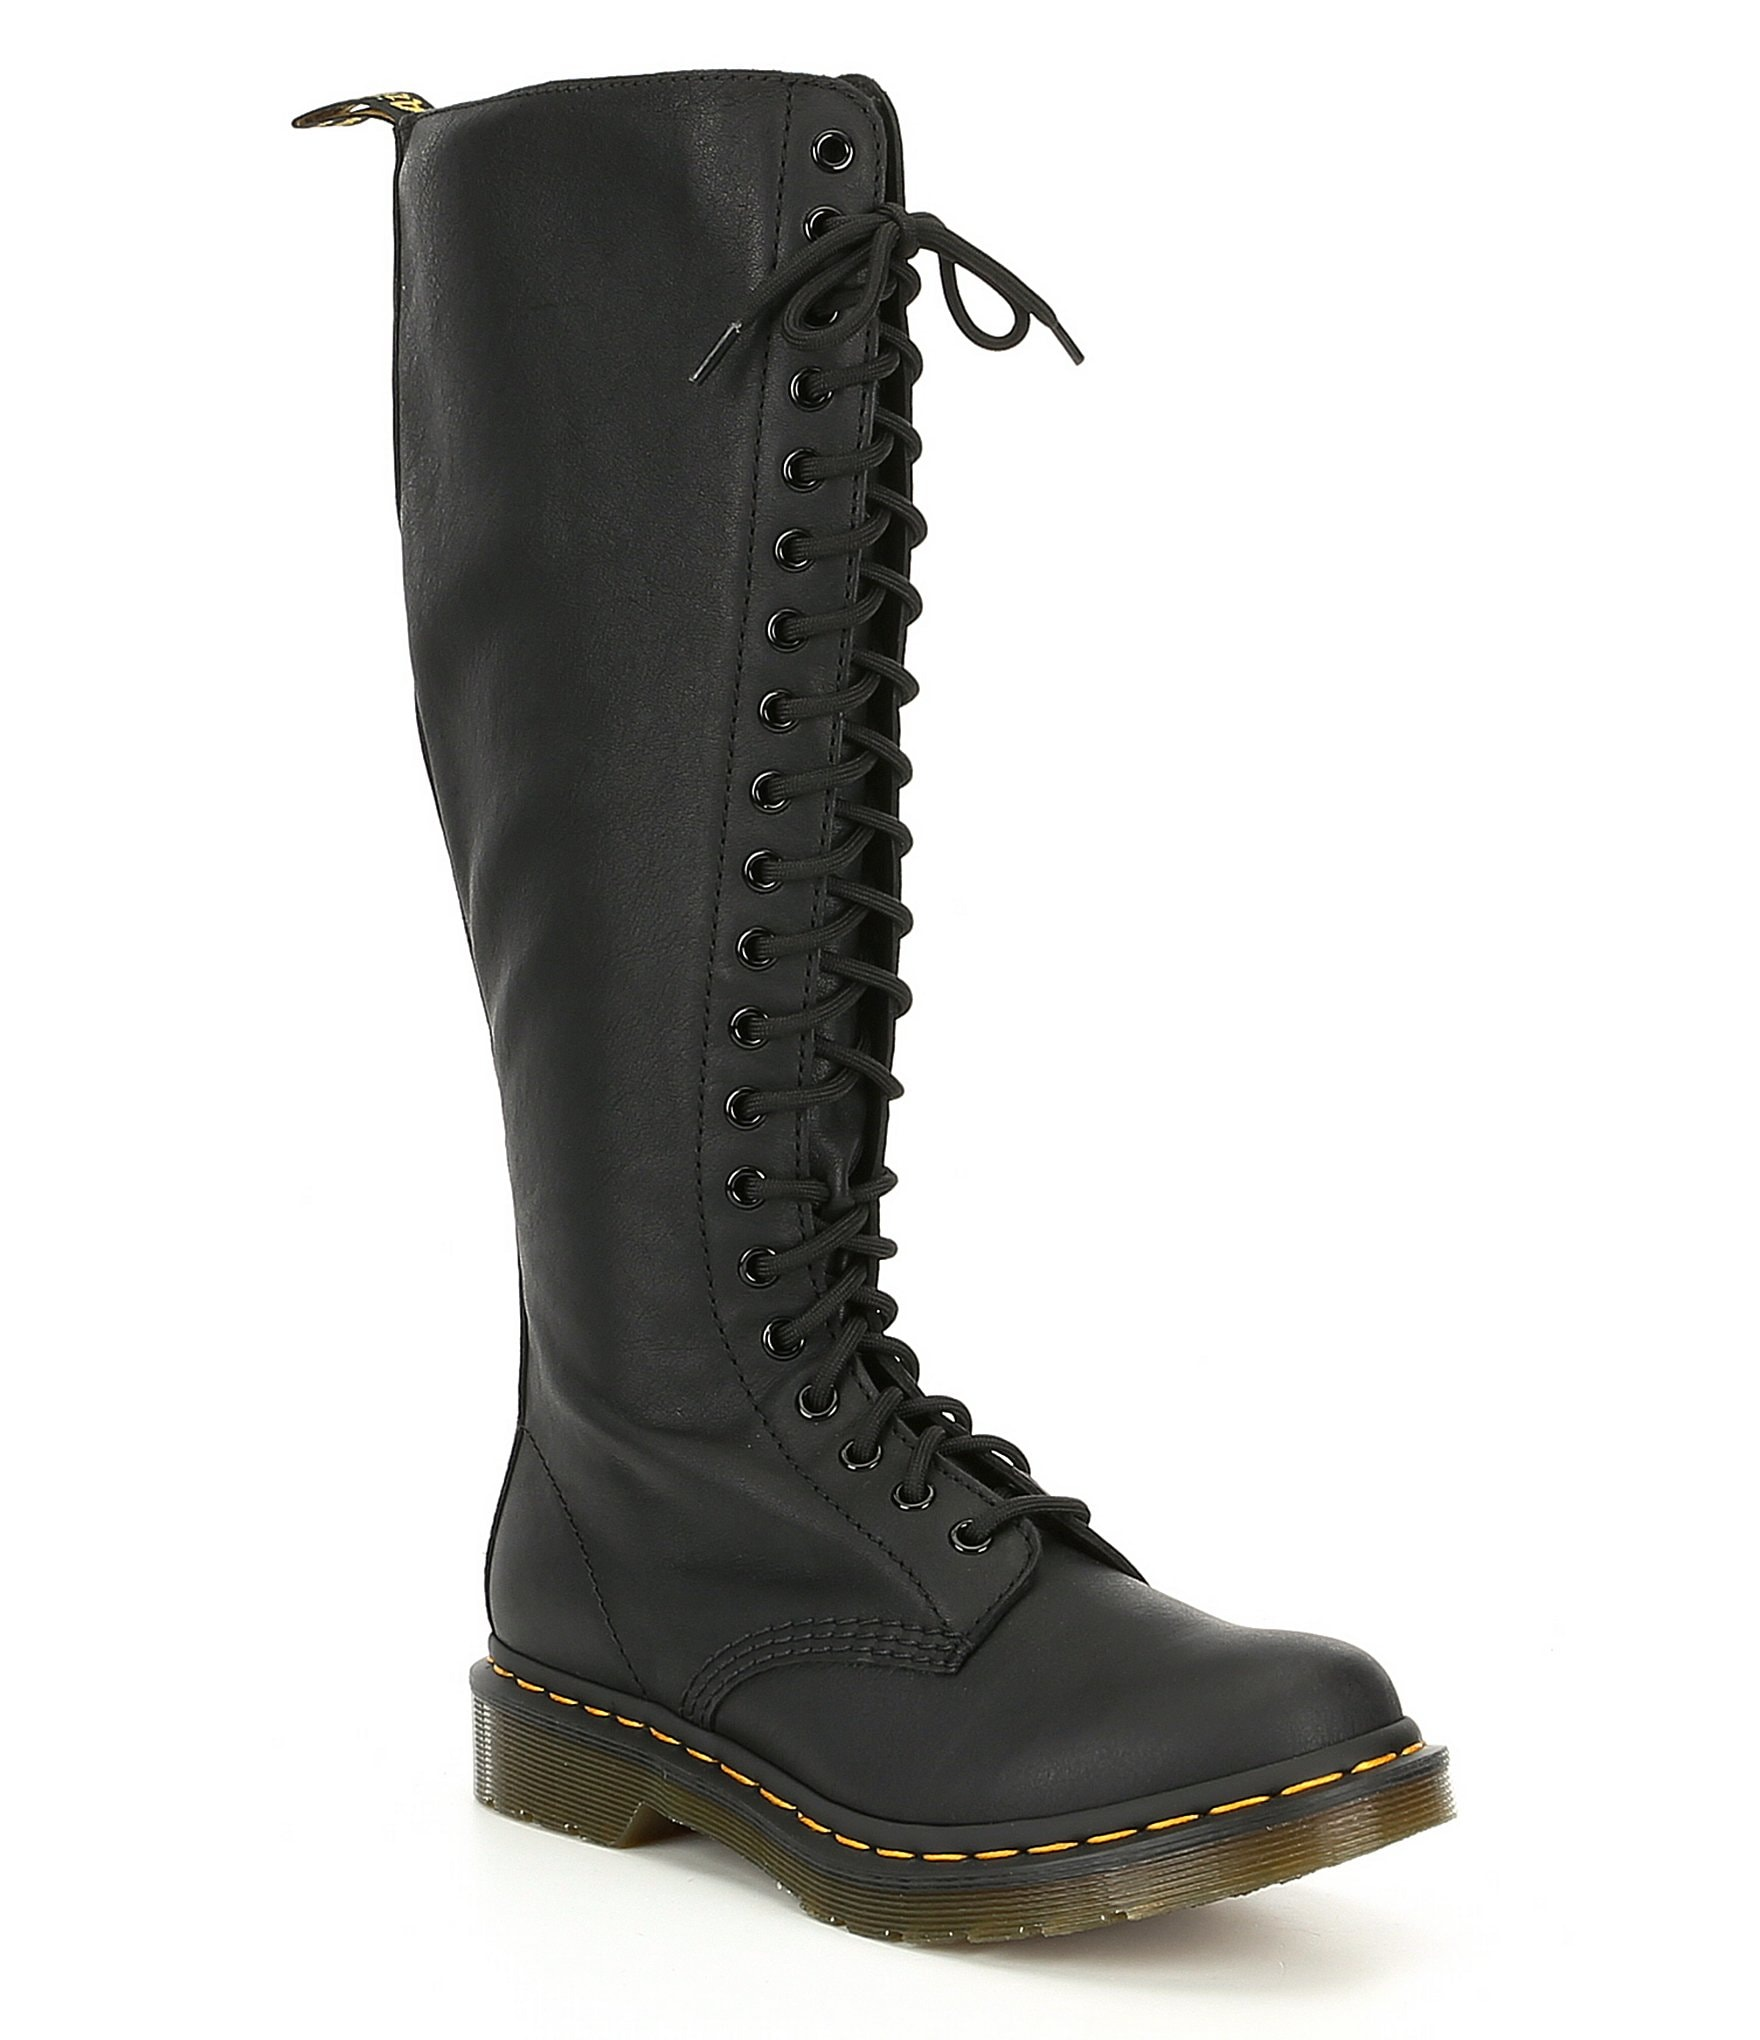 25c67063d42 Dr. Martens 1B60 20-Eye Tall Leather Boots